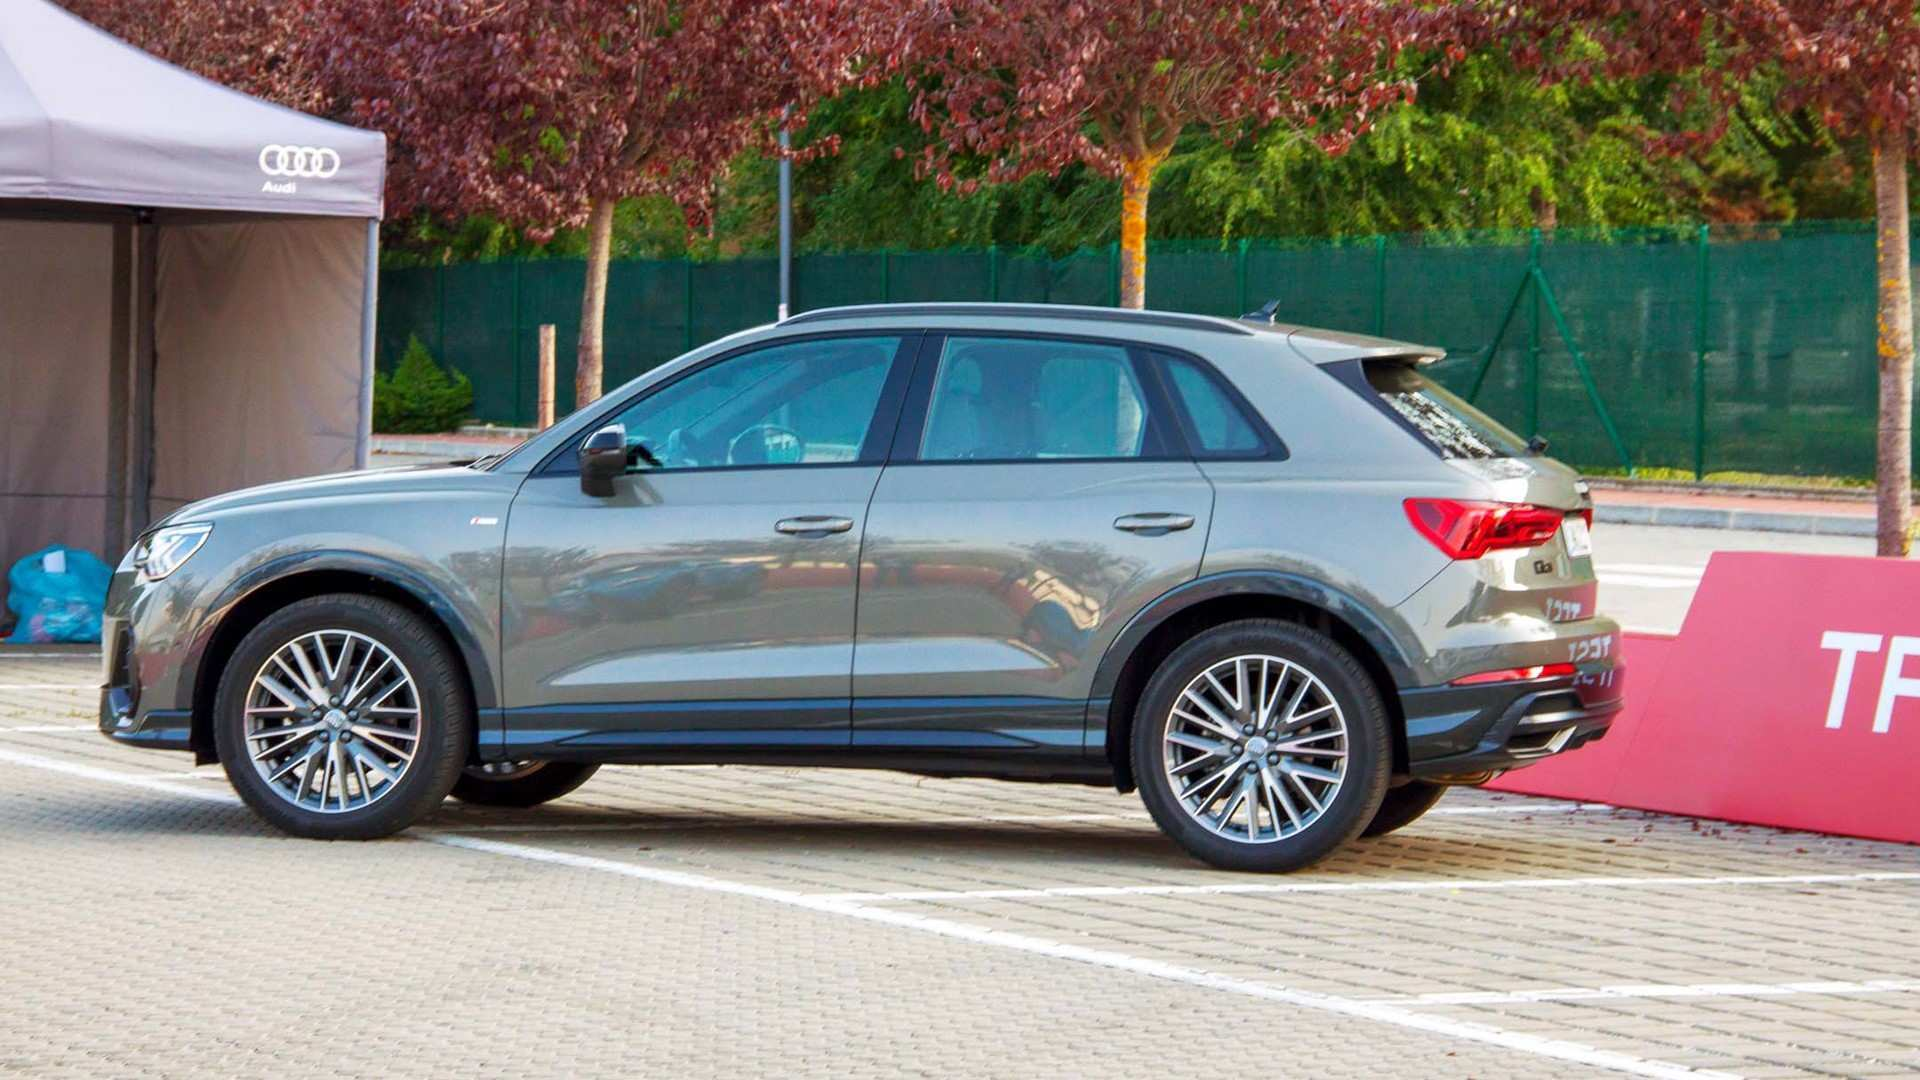 49 Best 2019 Audi Q3 Dimensions New Review